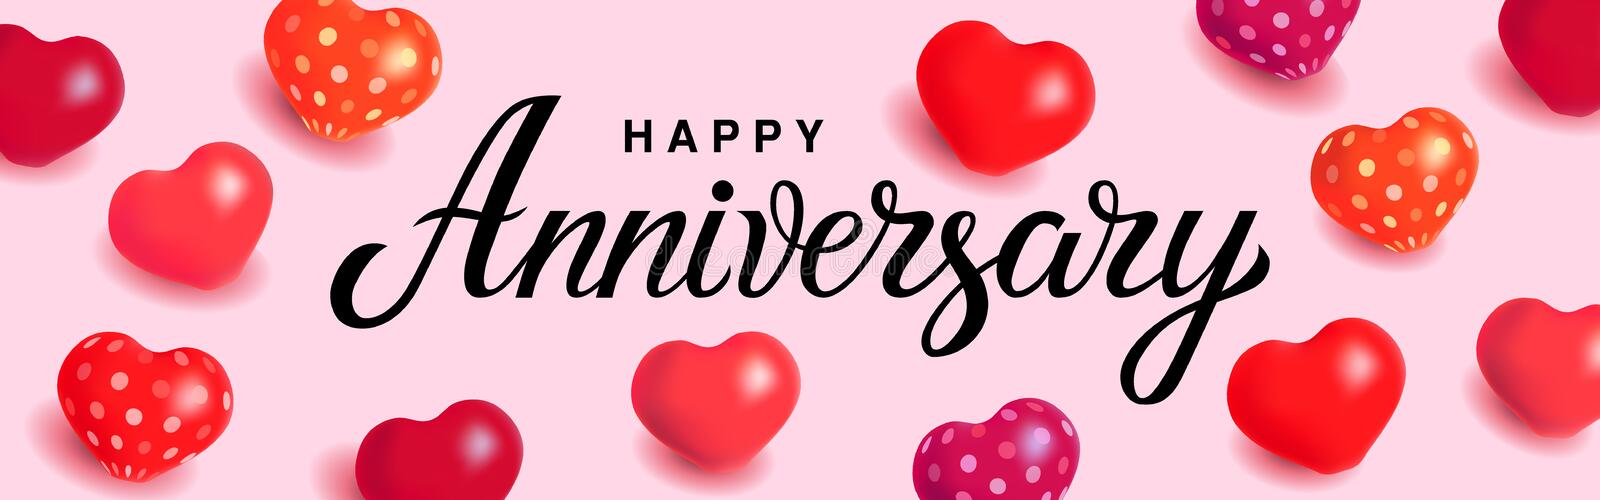 Happy Anniversary - unique hand drawn holiday quote on light pink background with heart balloons. Handwritten typography vector illustration